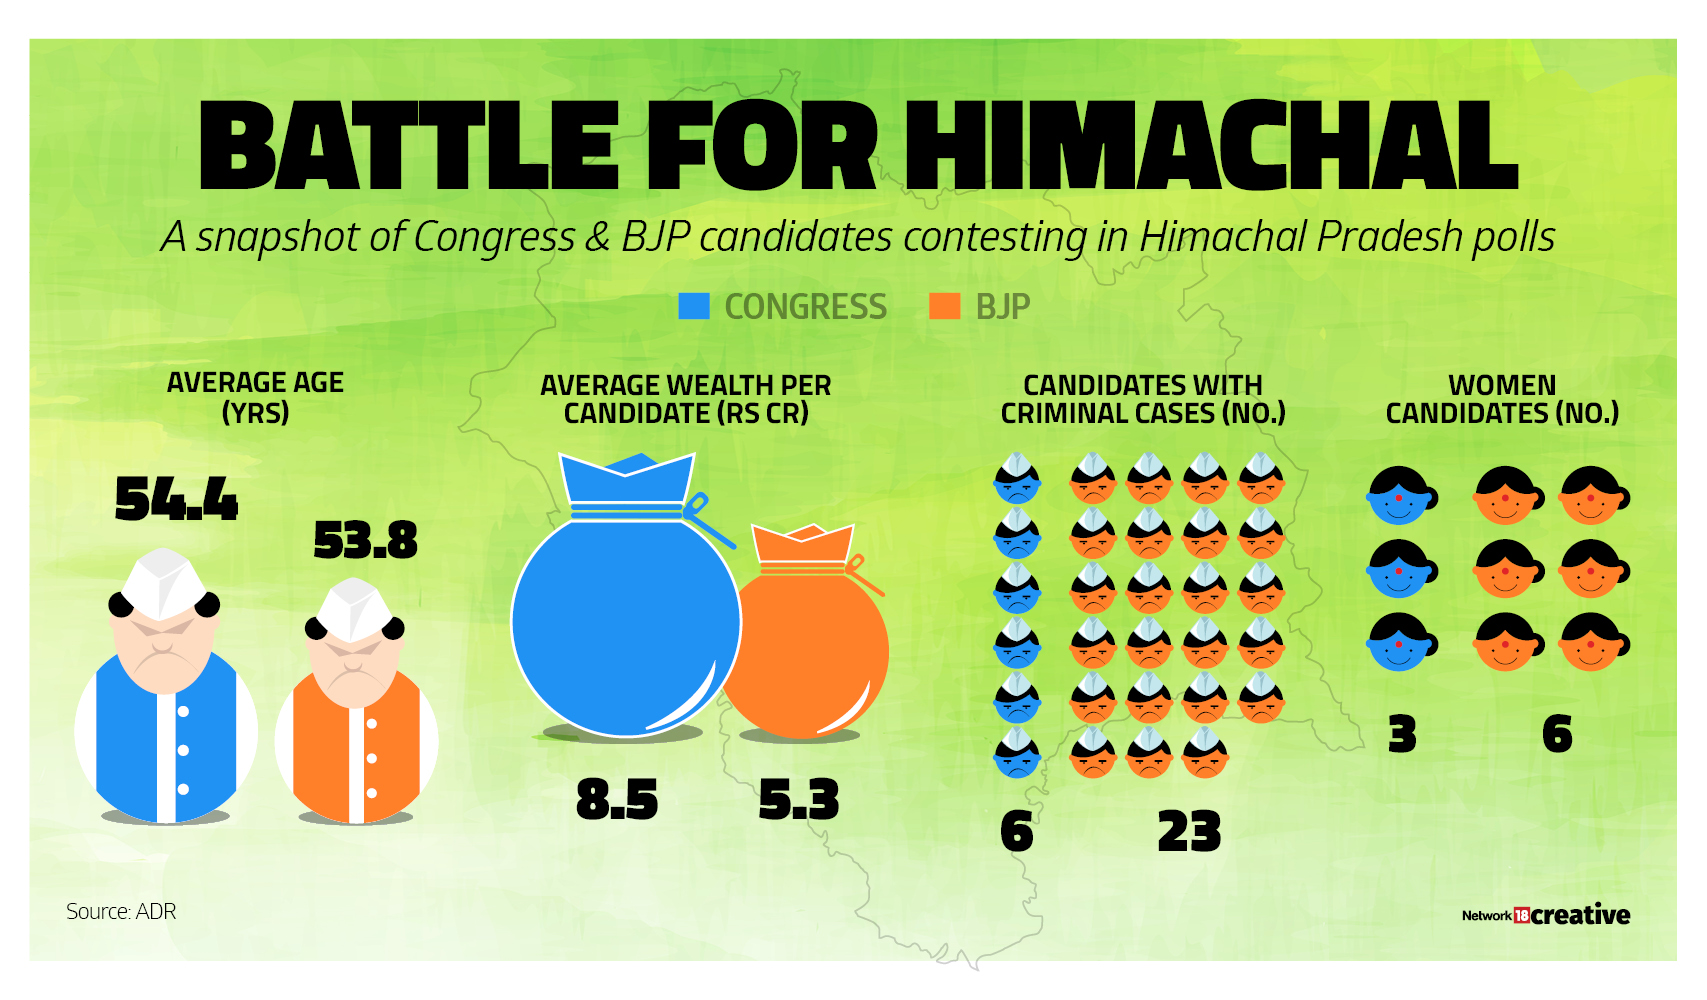 A snapshot of Congress and BJP candidates who contested in Himachal Pradesh polls